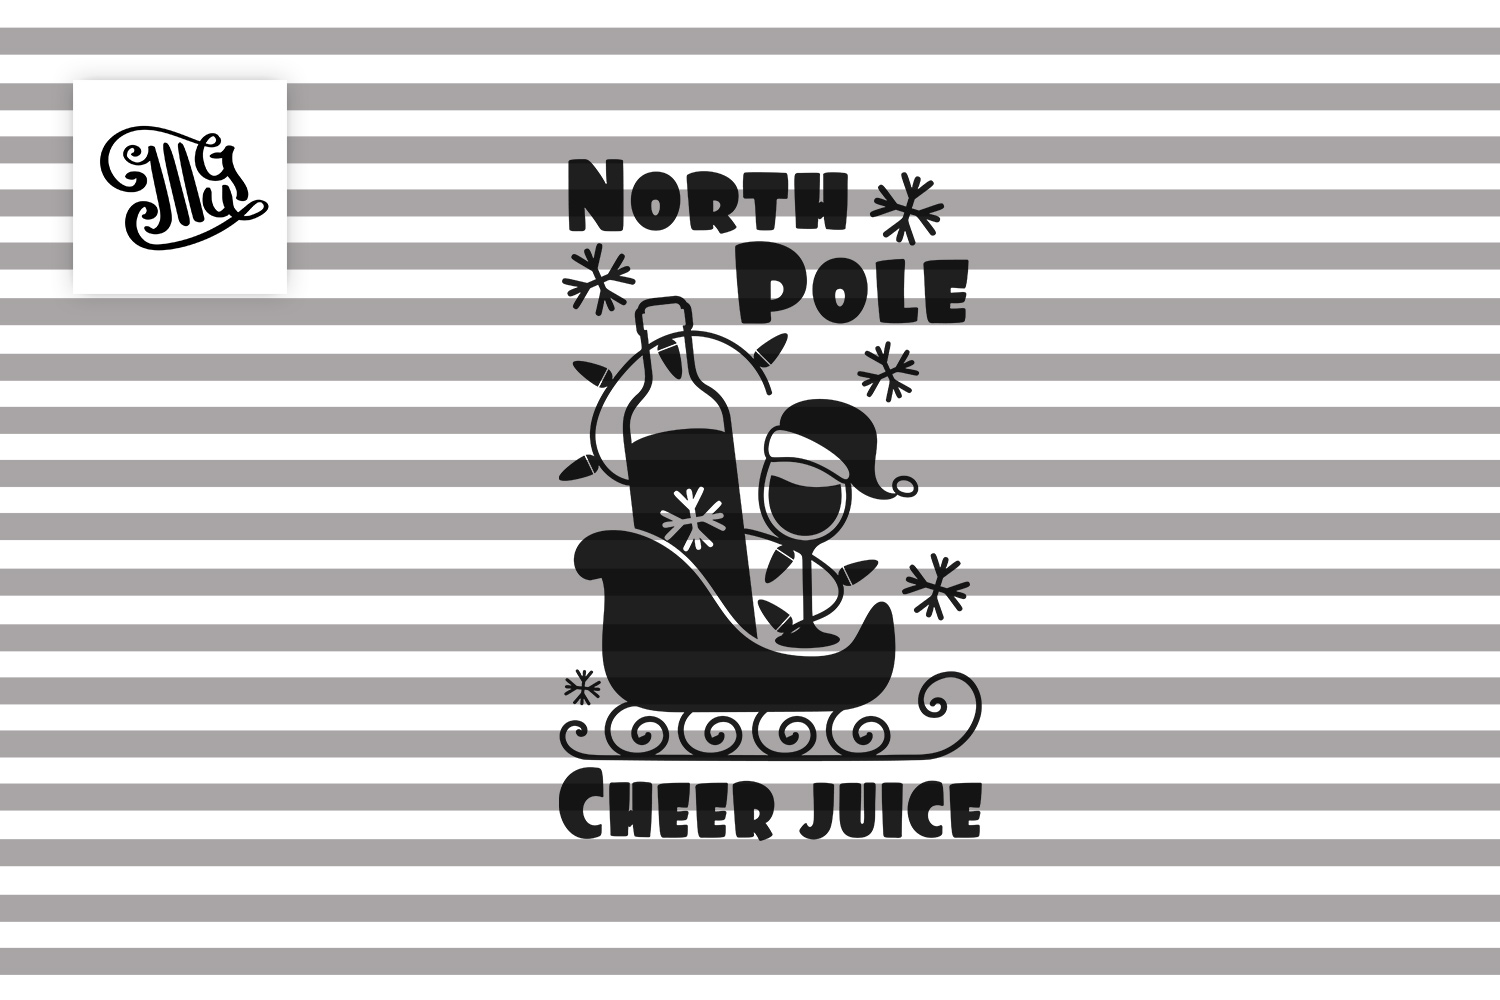 North Pole Cheer juice - Christmas wine example image 2